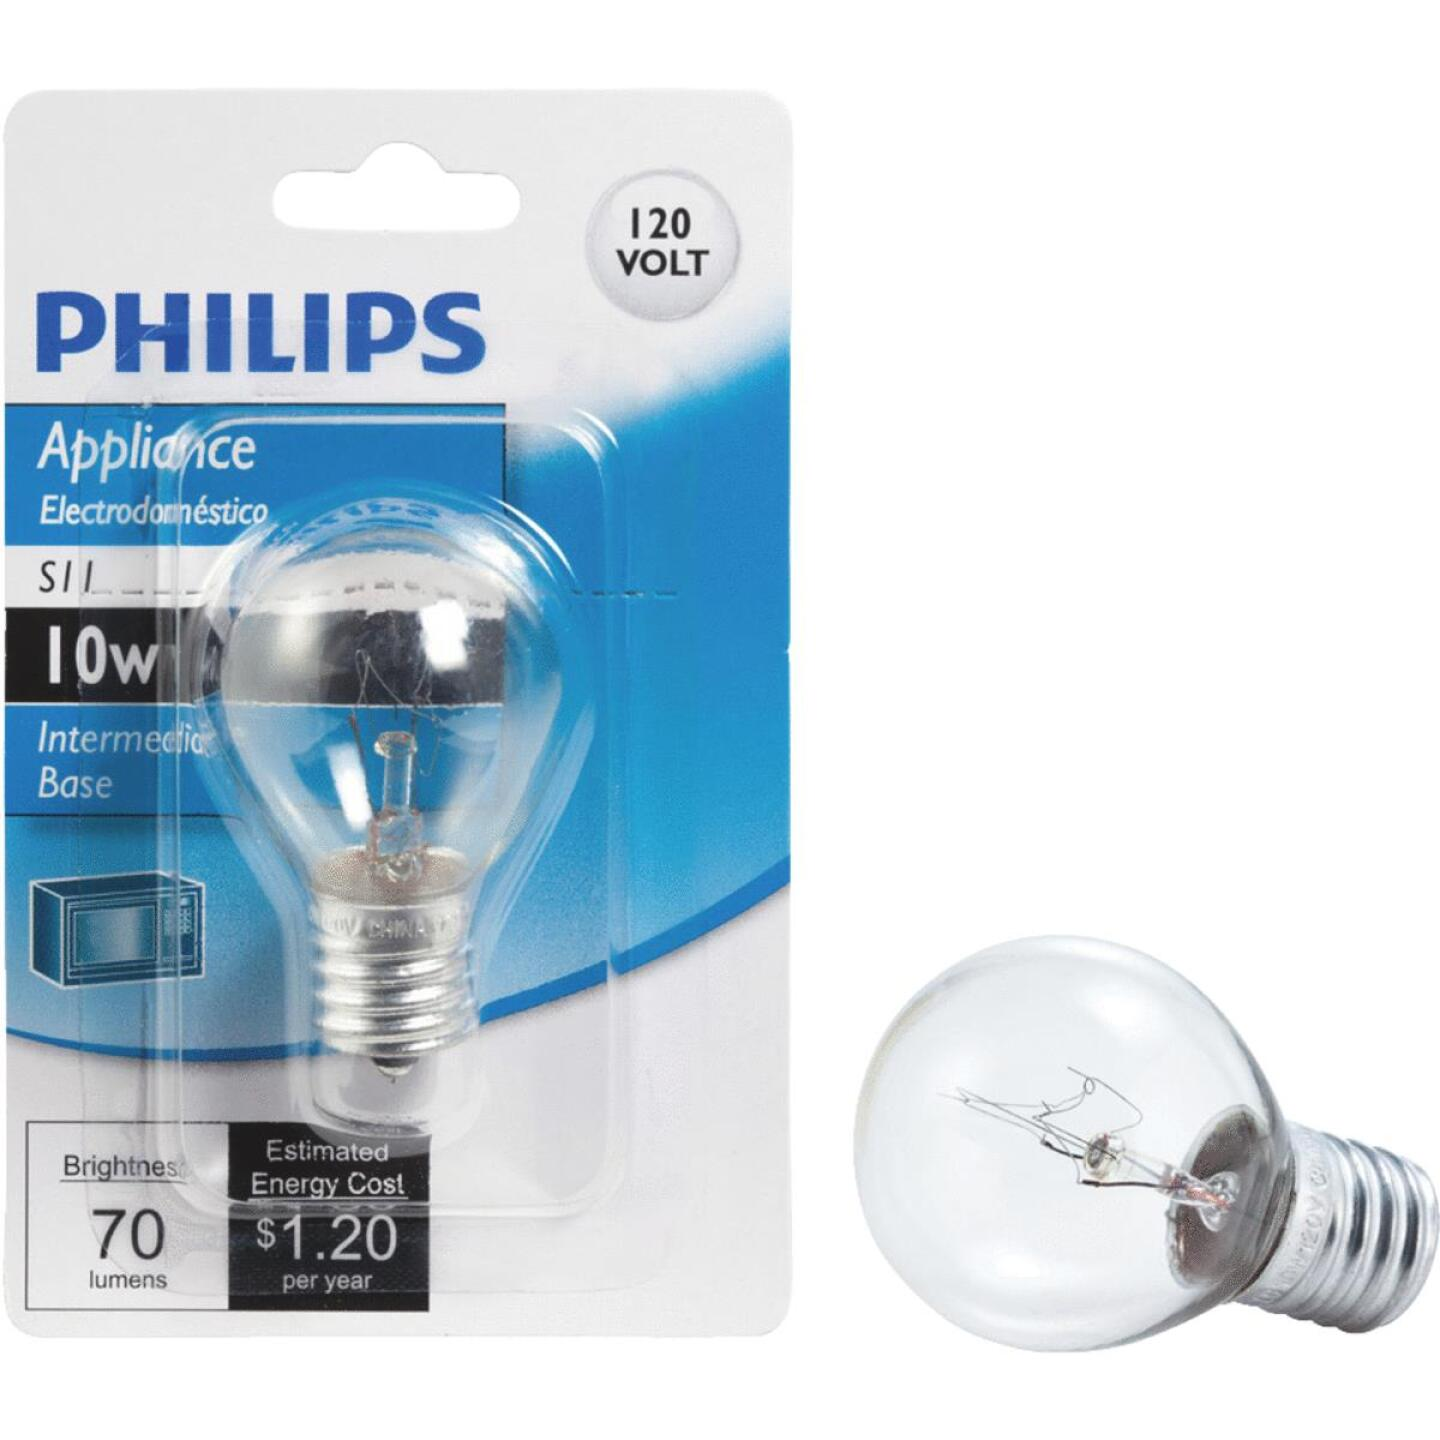 Philips 10W Clear Intermediate Base S11 Incandescent Exit Sign Light Bulb Image 1